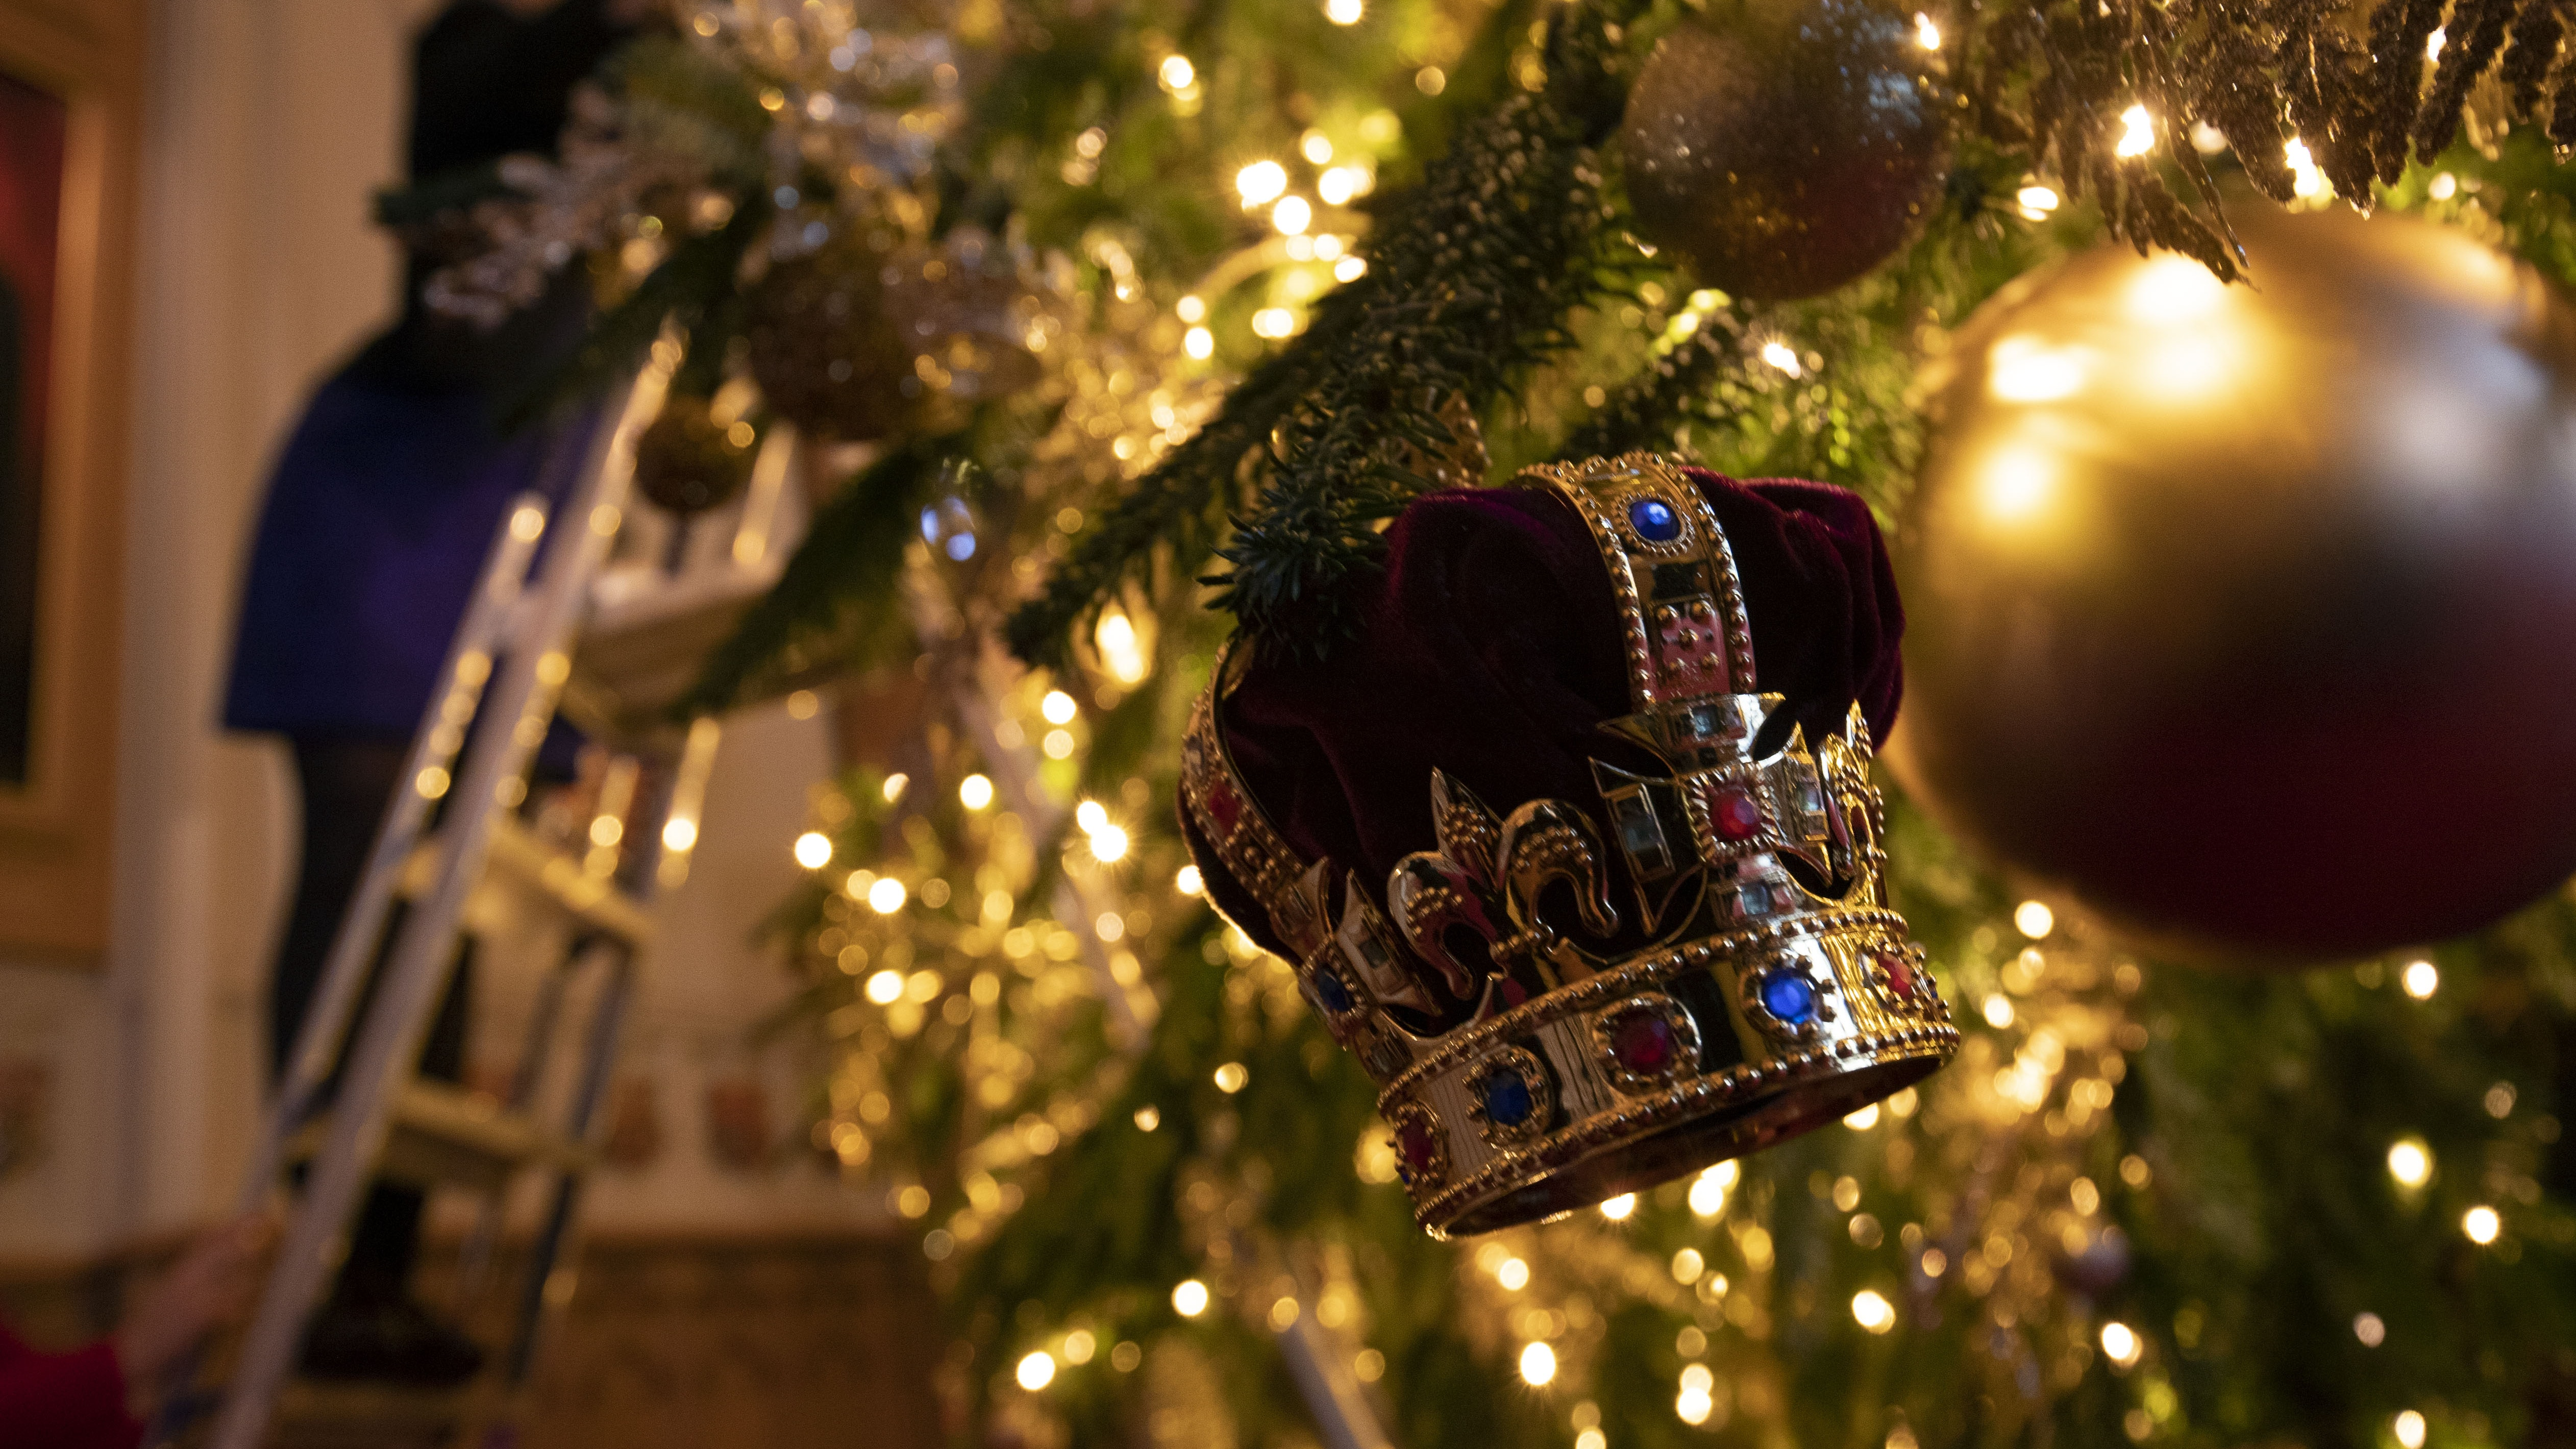 In Pictures: Christmas decorations fit for a royal castle   BT